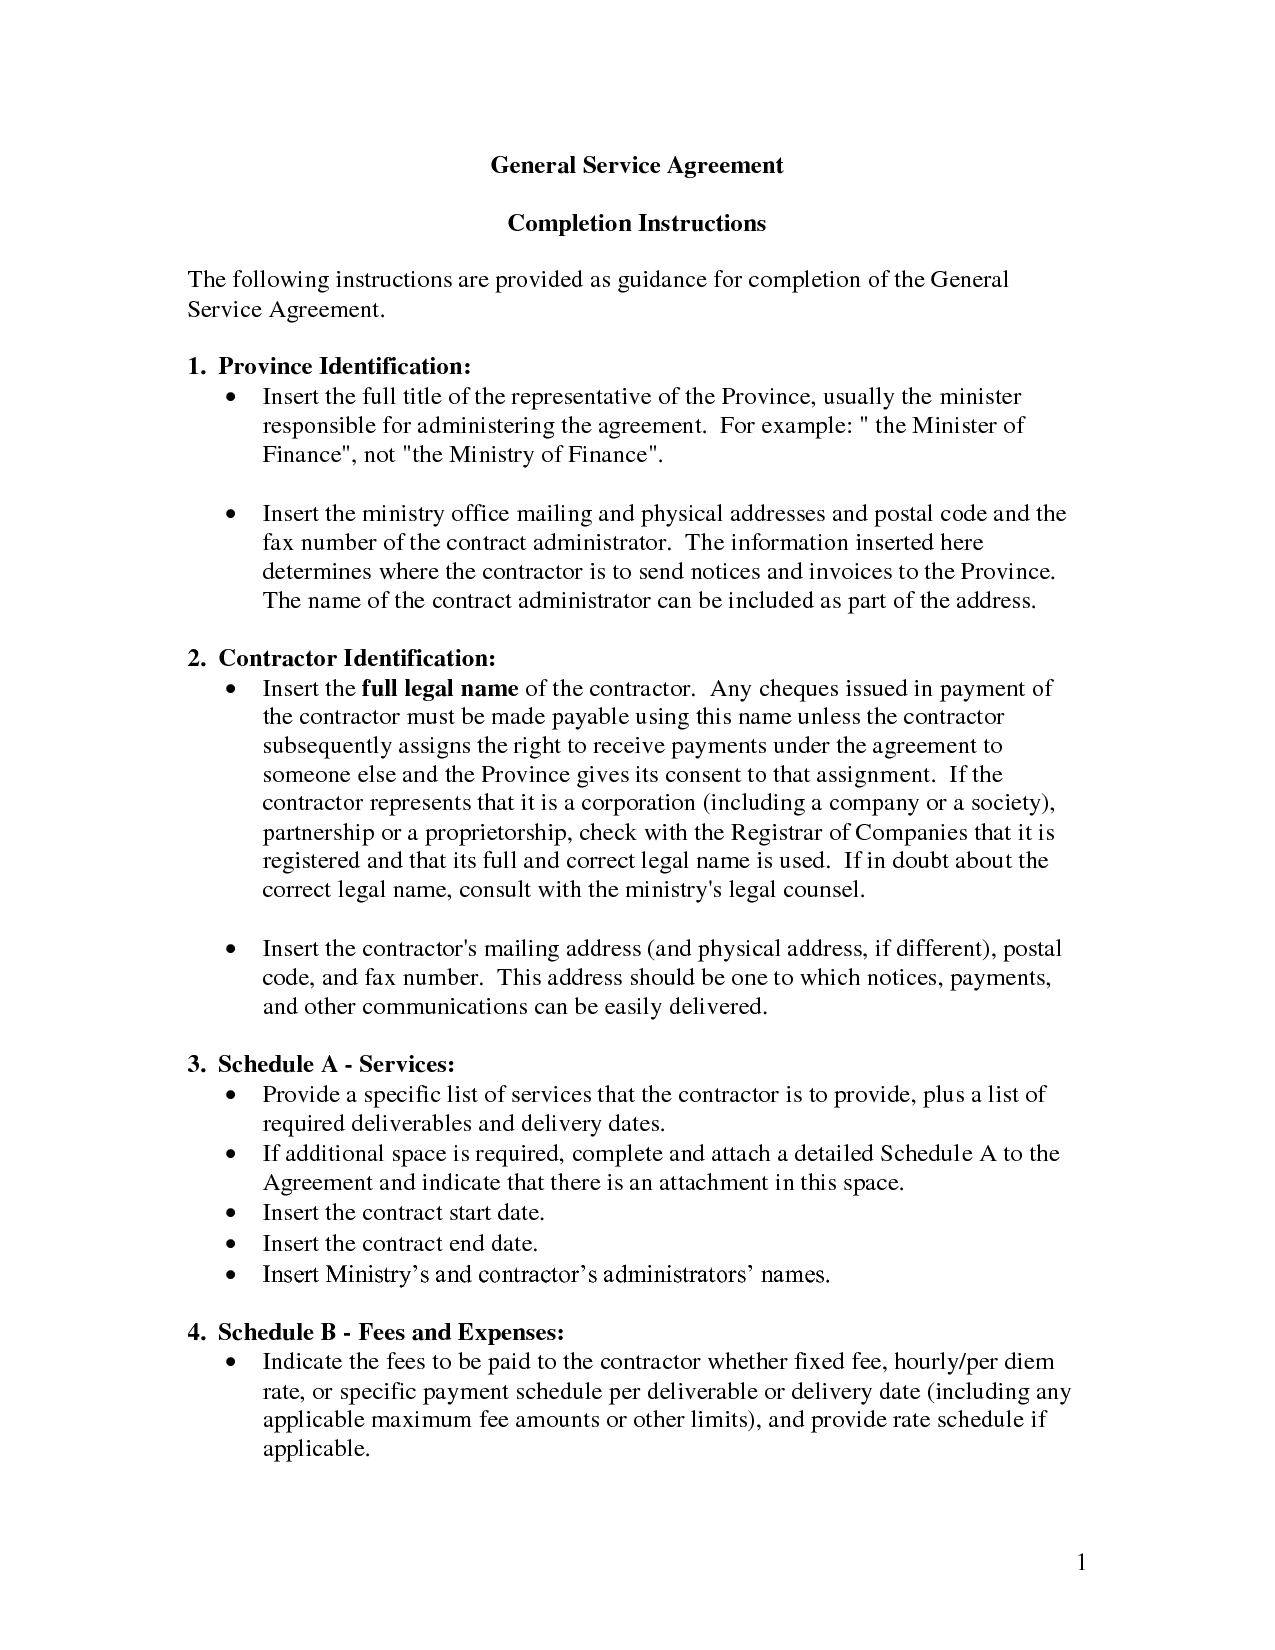 General Service Agreement Template By Banter  General Contract